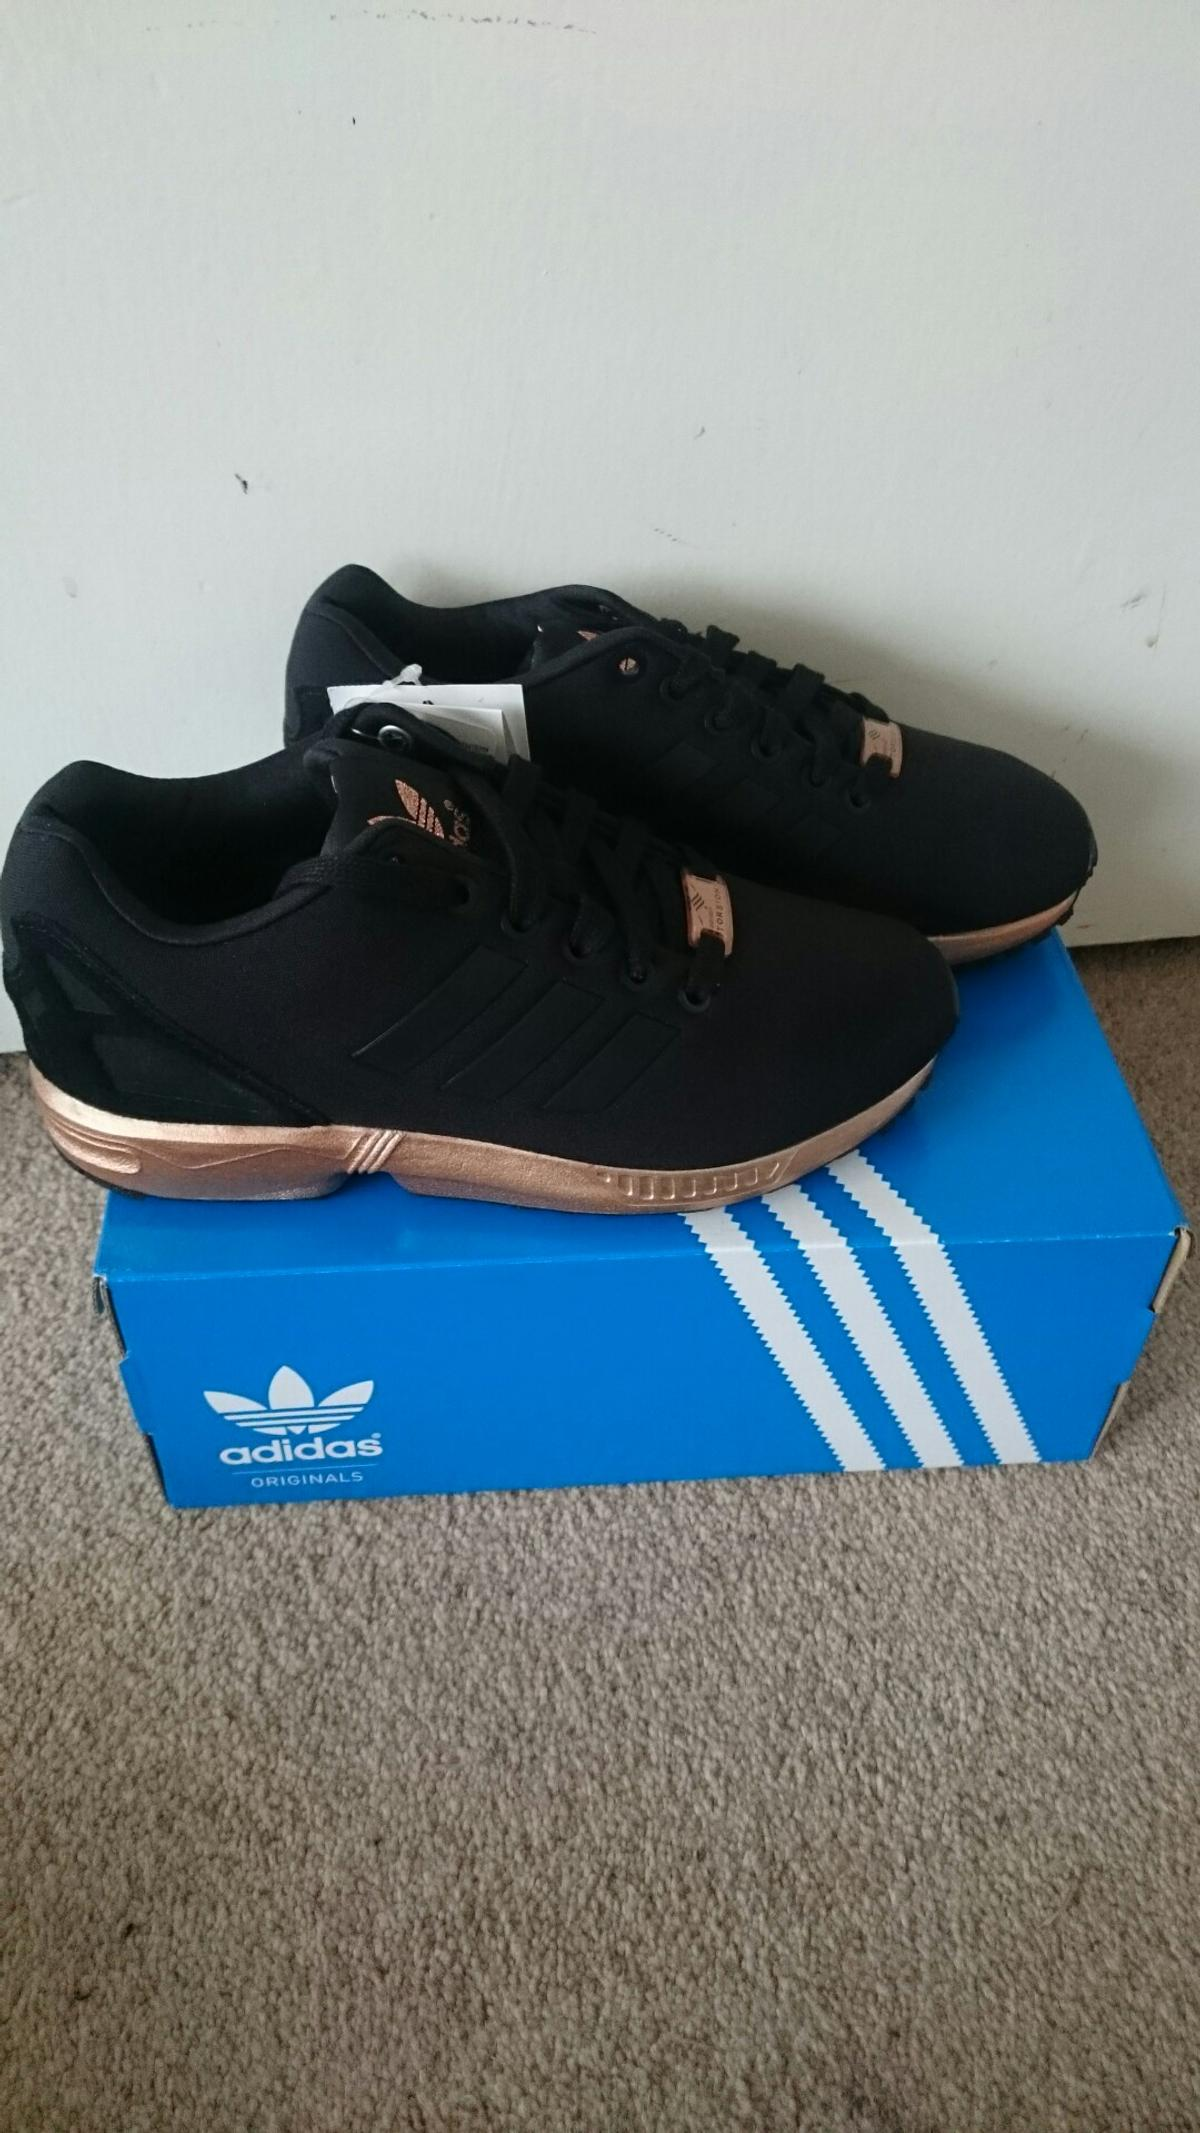 buy online d2e90 51d3f Adidas flux black with metallic copper/gold